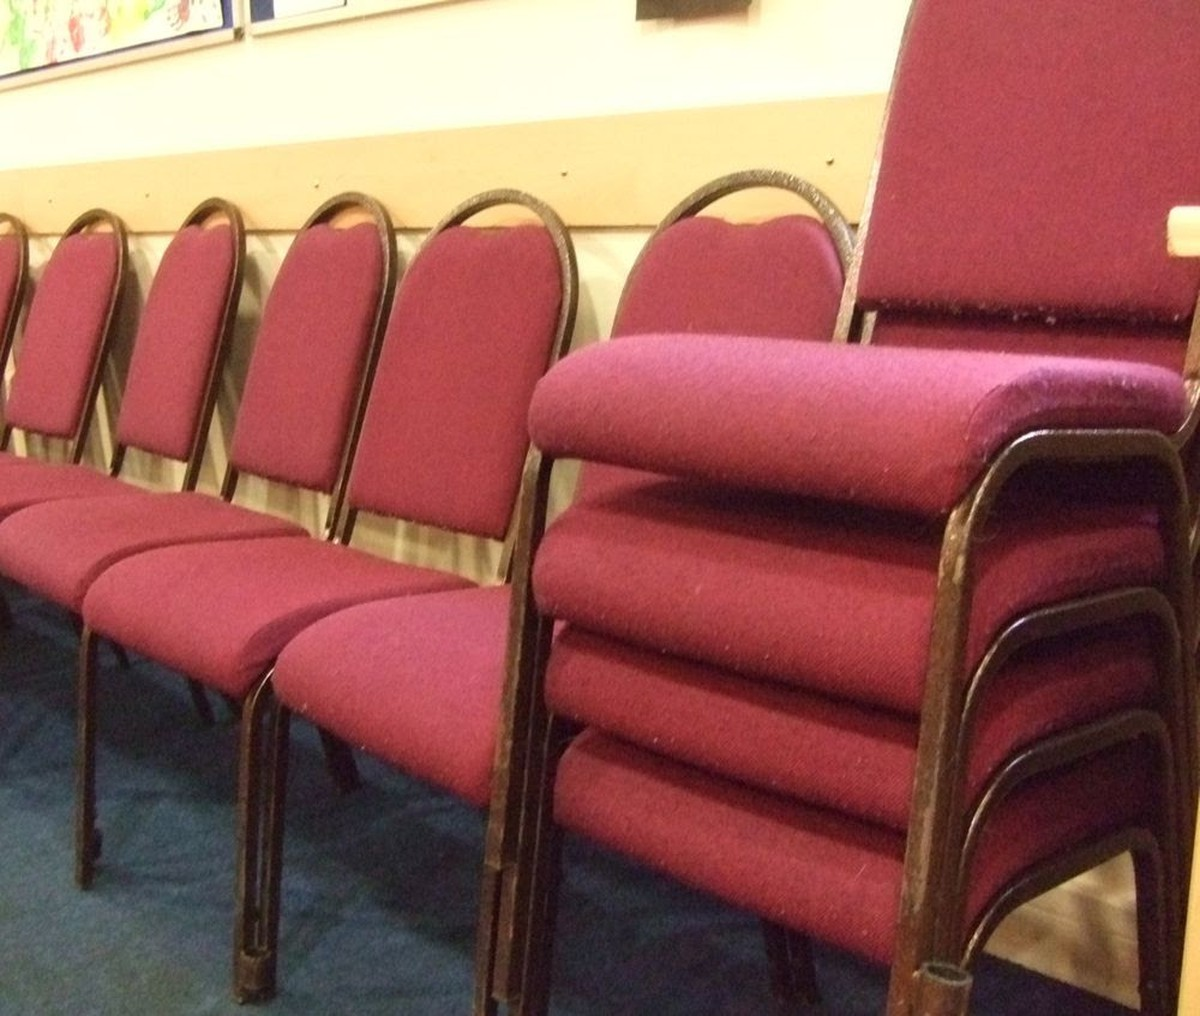 Secondhand Chairs And Tables Church Pews And Chairs